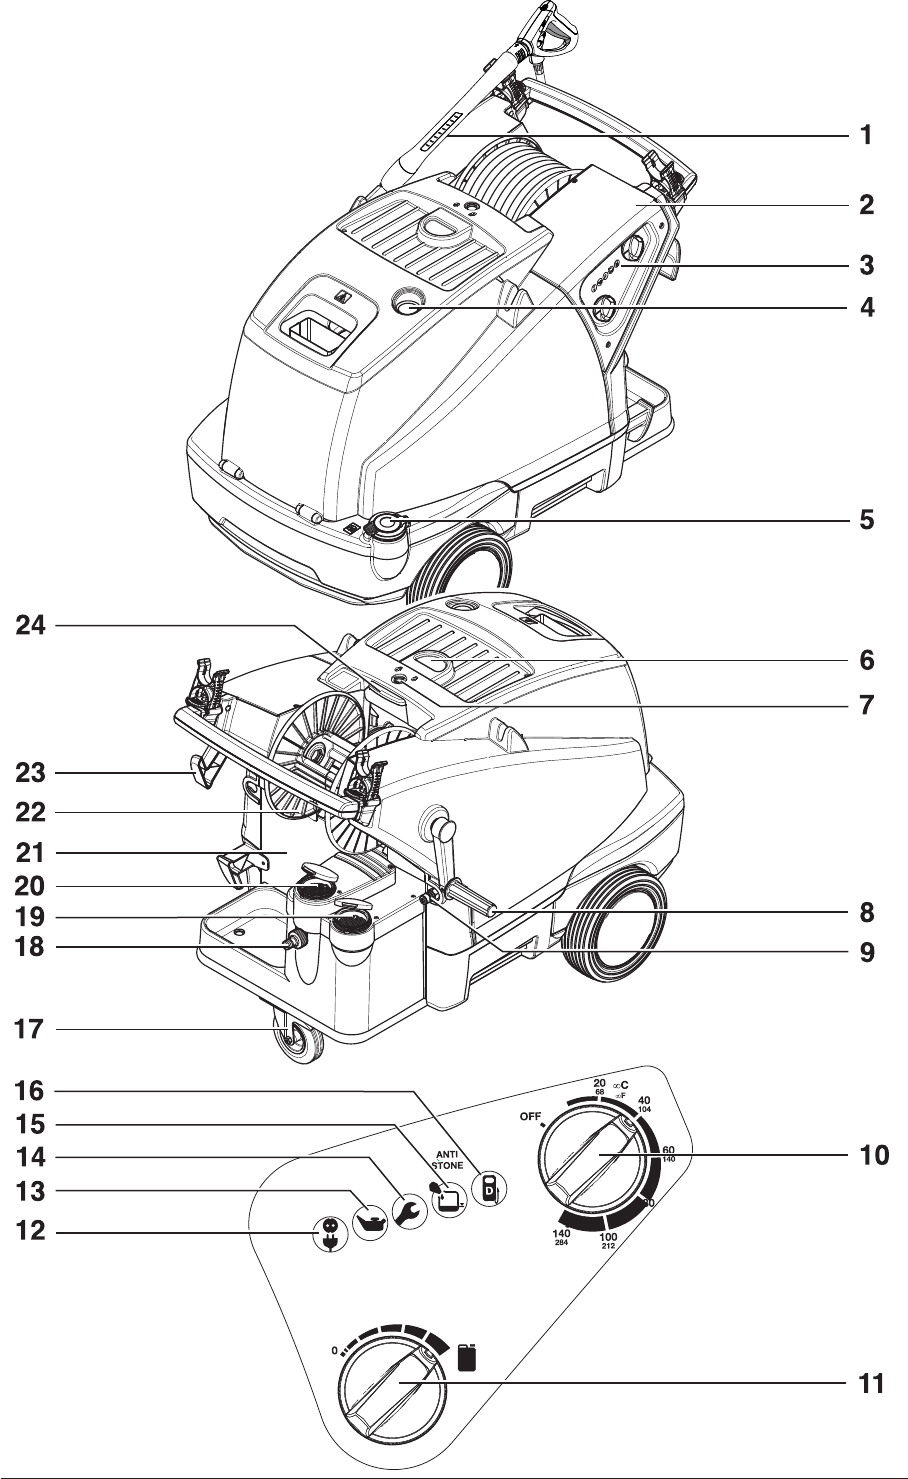 Page 2 of Nilfisk-ALTO Pressure Washer 107140469 D User